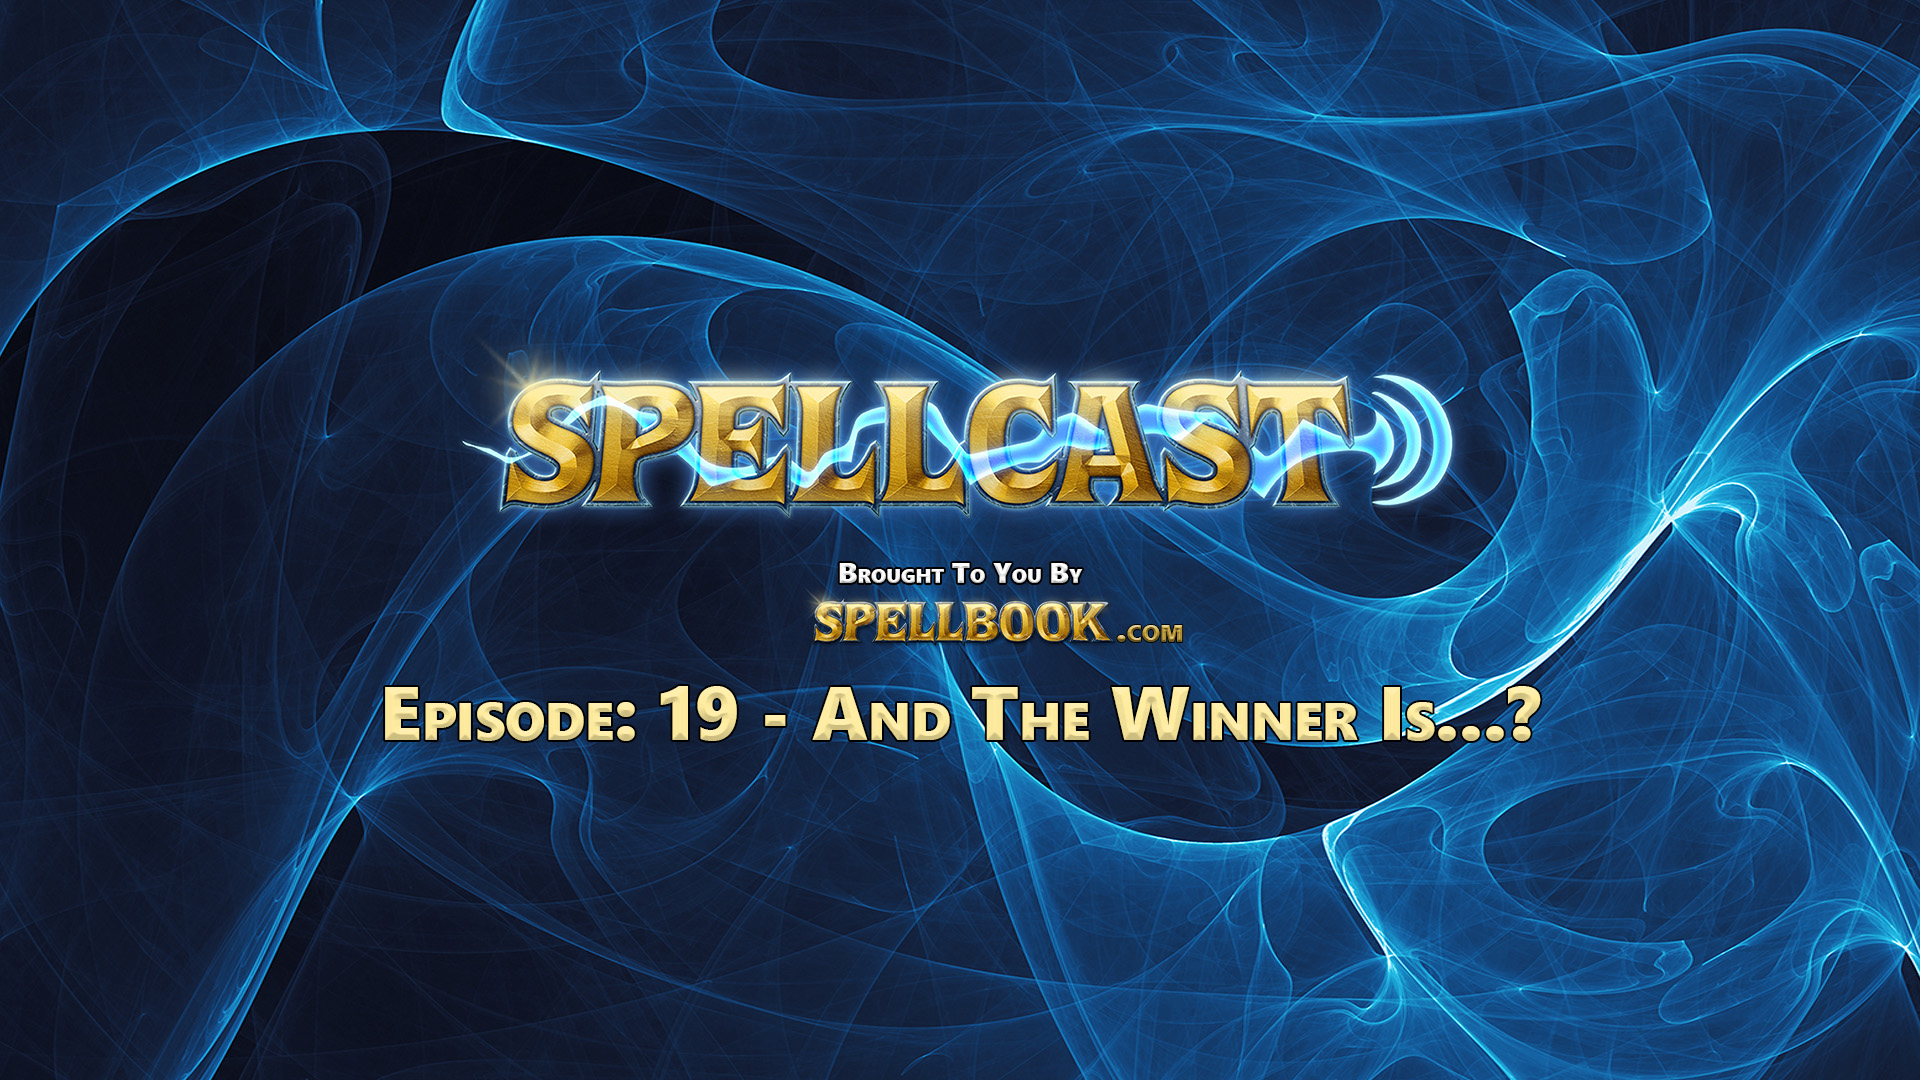 Spellcast Episode: 19 - And The Winner Is...?